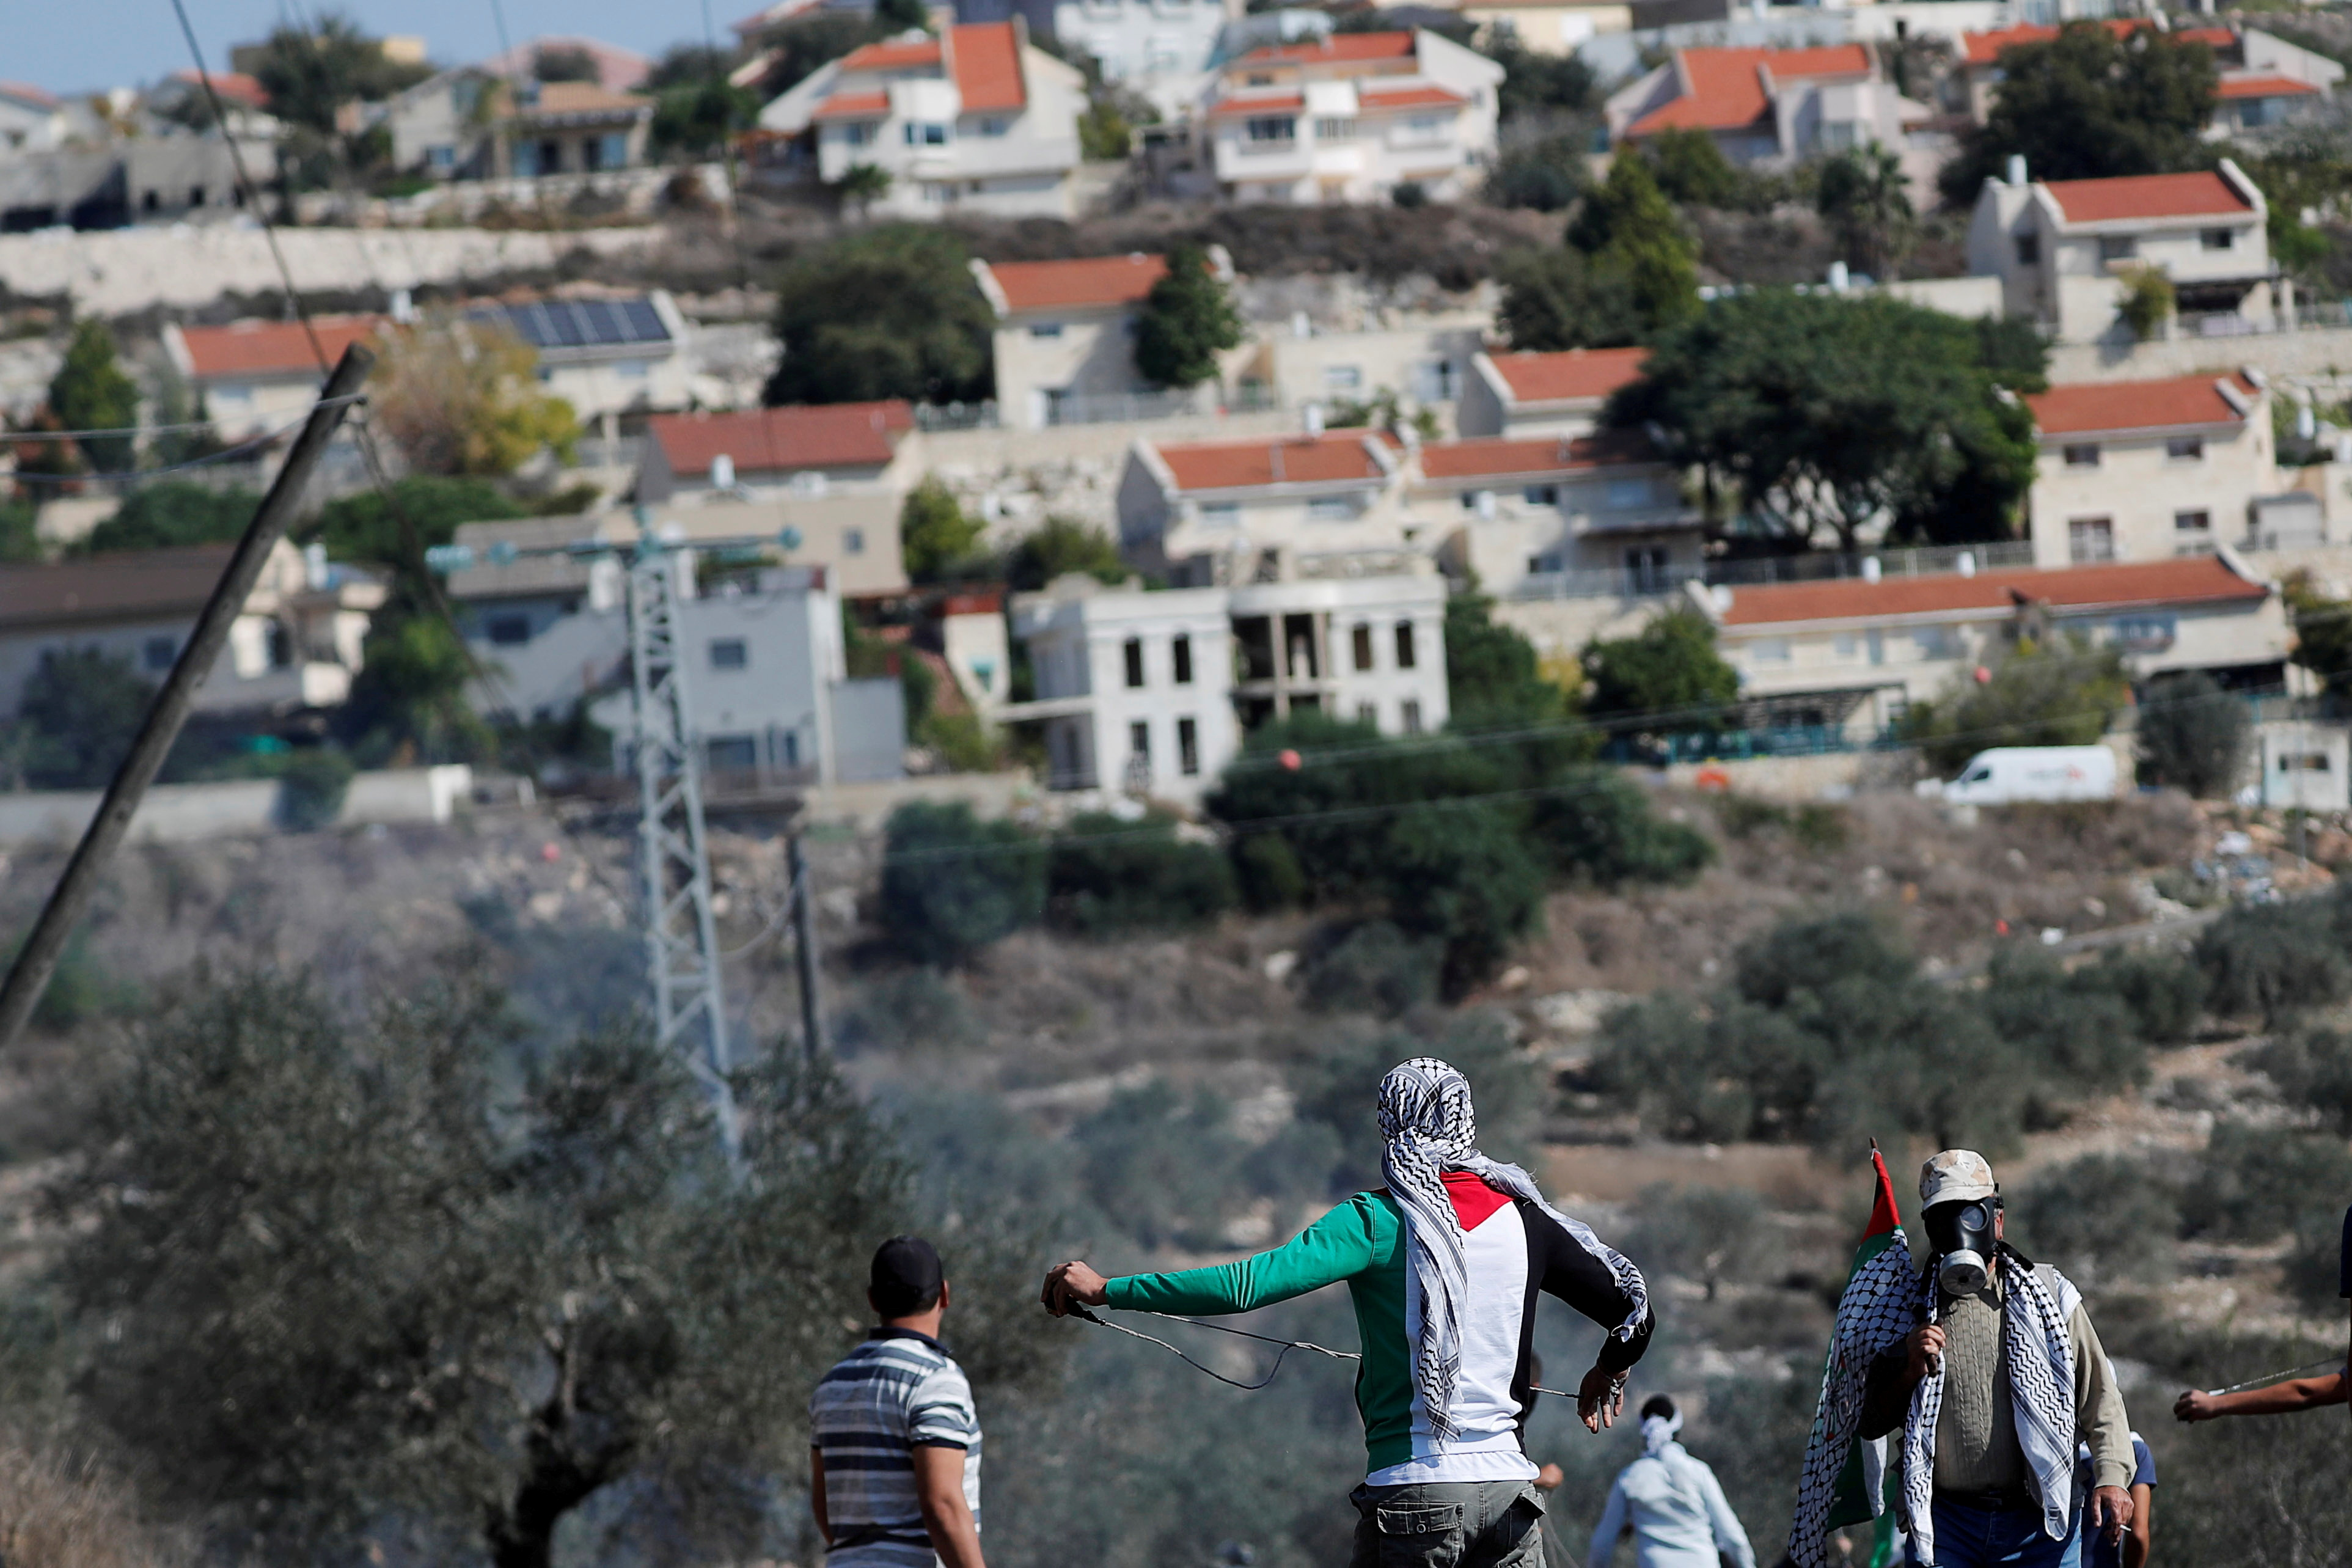 Palestinian demonstrators stand in front of a Jewish settlement during a protest, in Kafr Qaddum in the Israeli-occupied West Bank November 13, 2020. REUTERS/Mohamad Torokman/File Photo